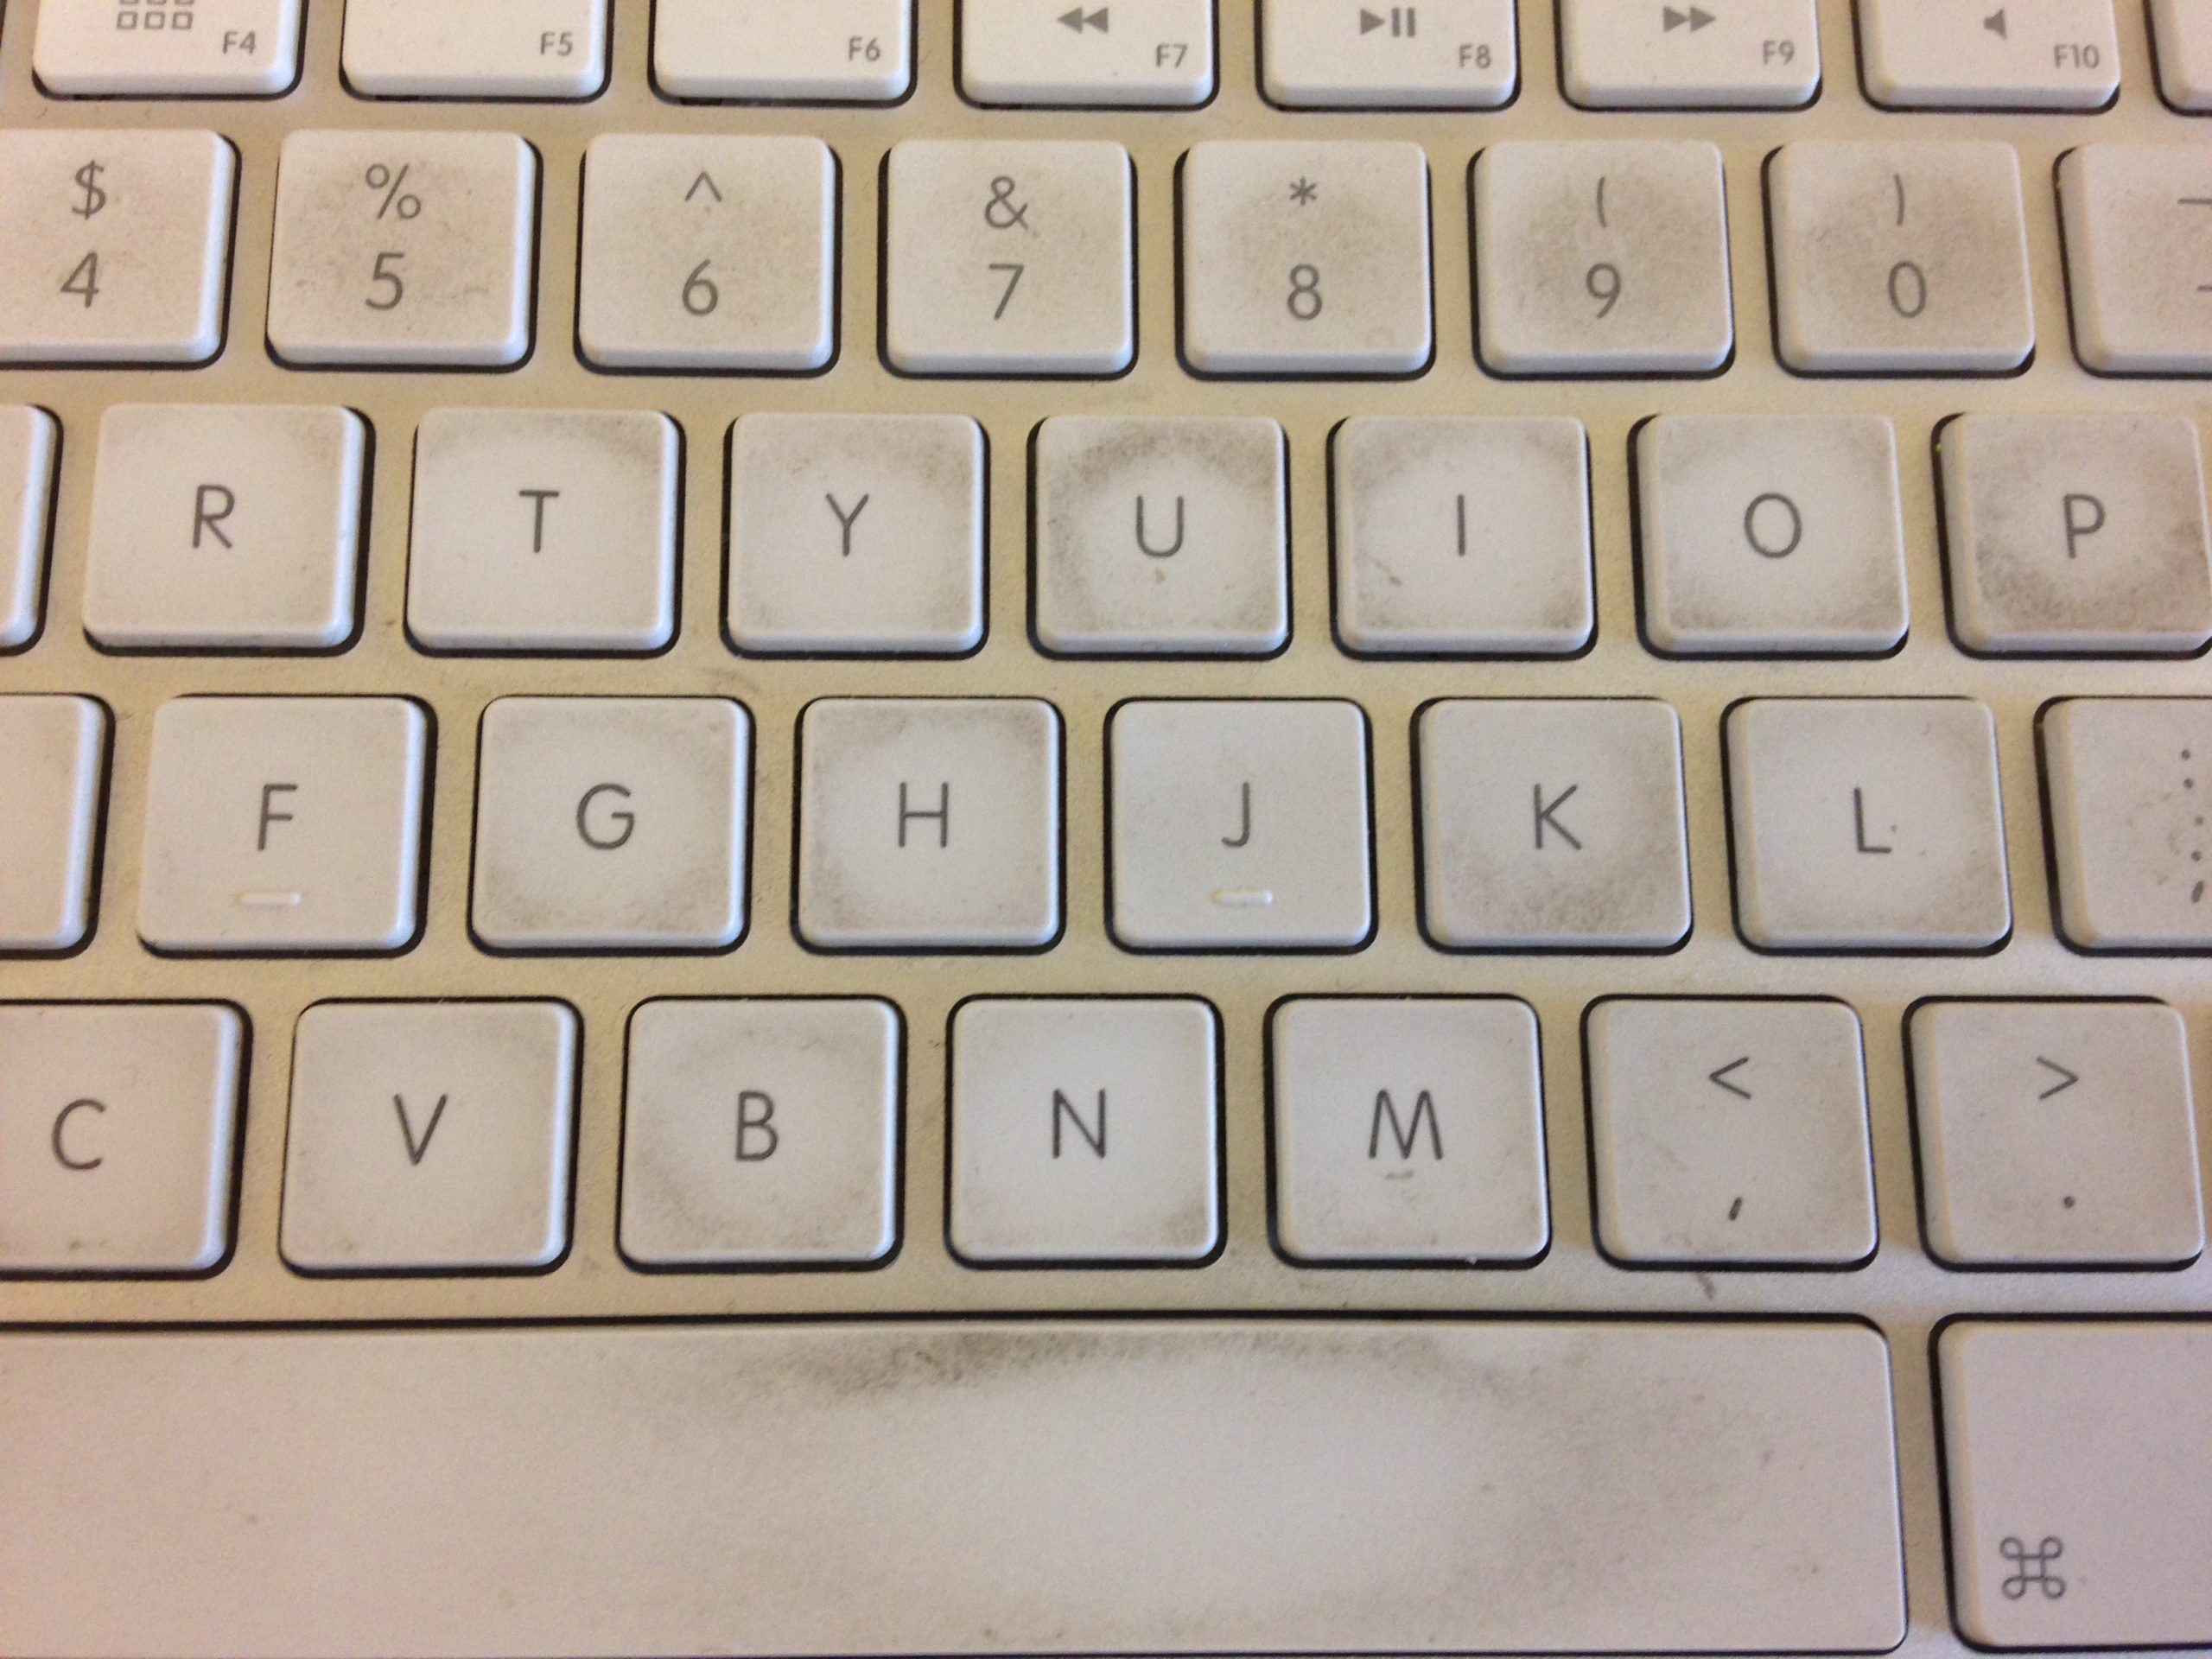 Dirty Apple Keyboard Before Computer Cleaning Service